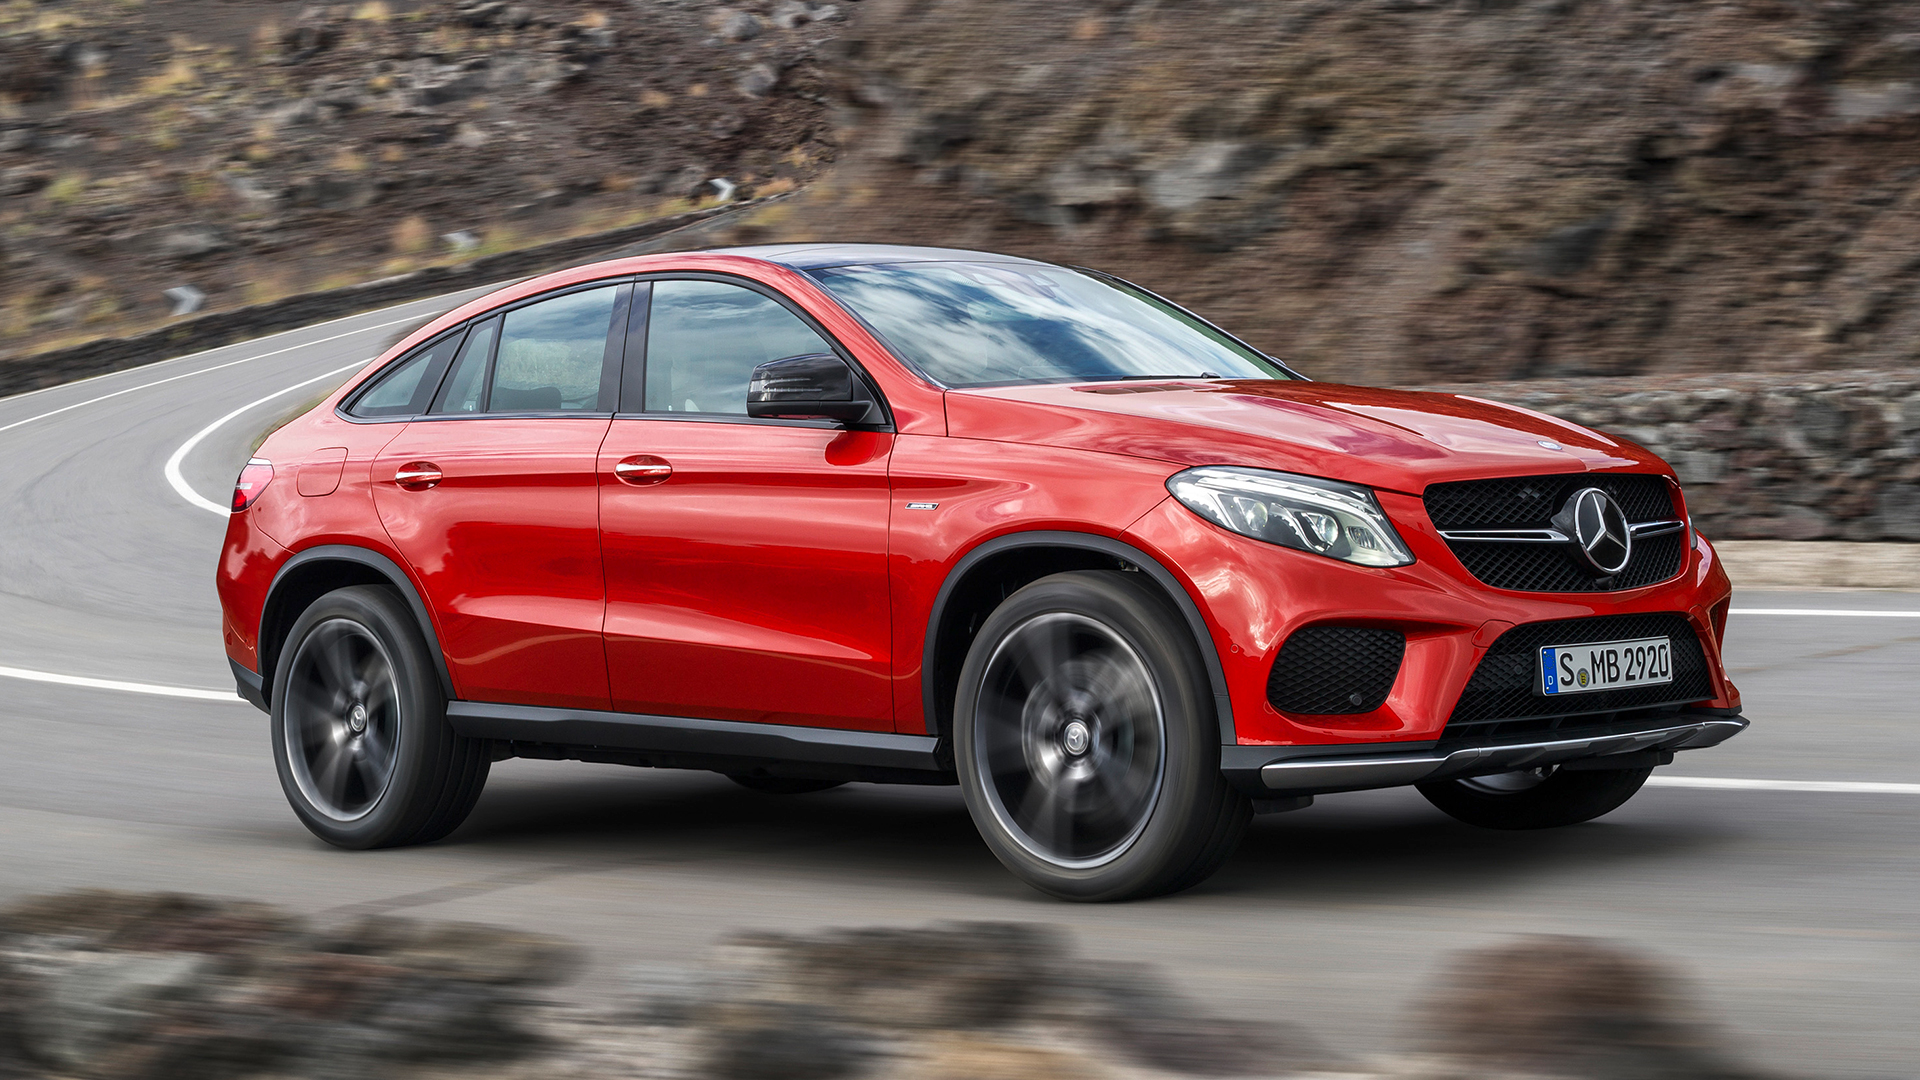 Used mercedes benz gle class cars for sale on auto trader uk for Mercedes benz of greensboro used cars